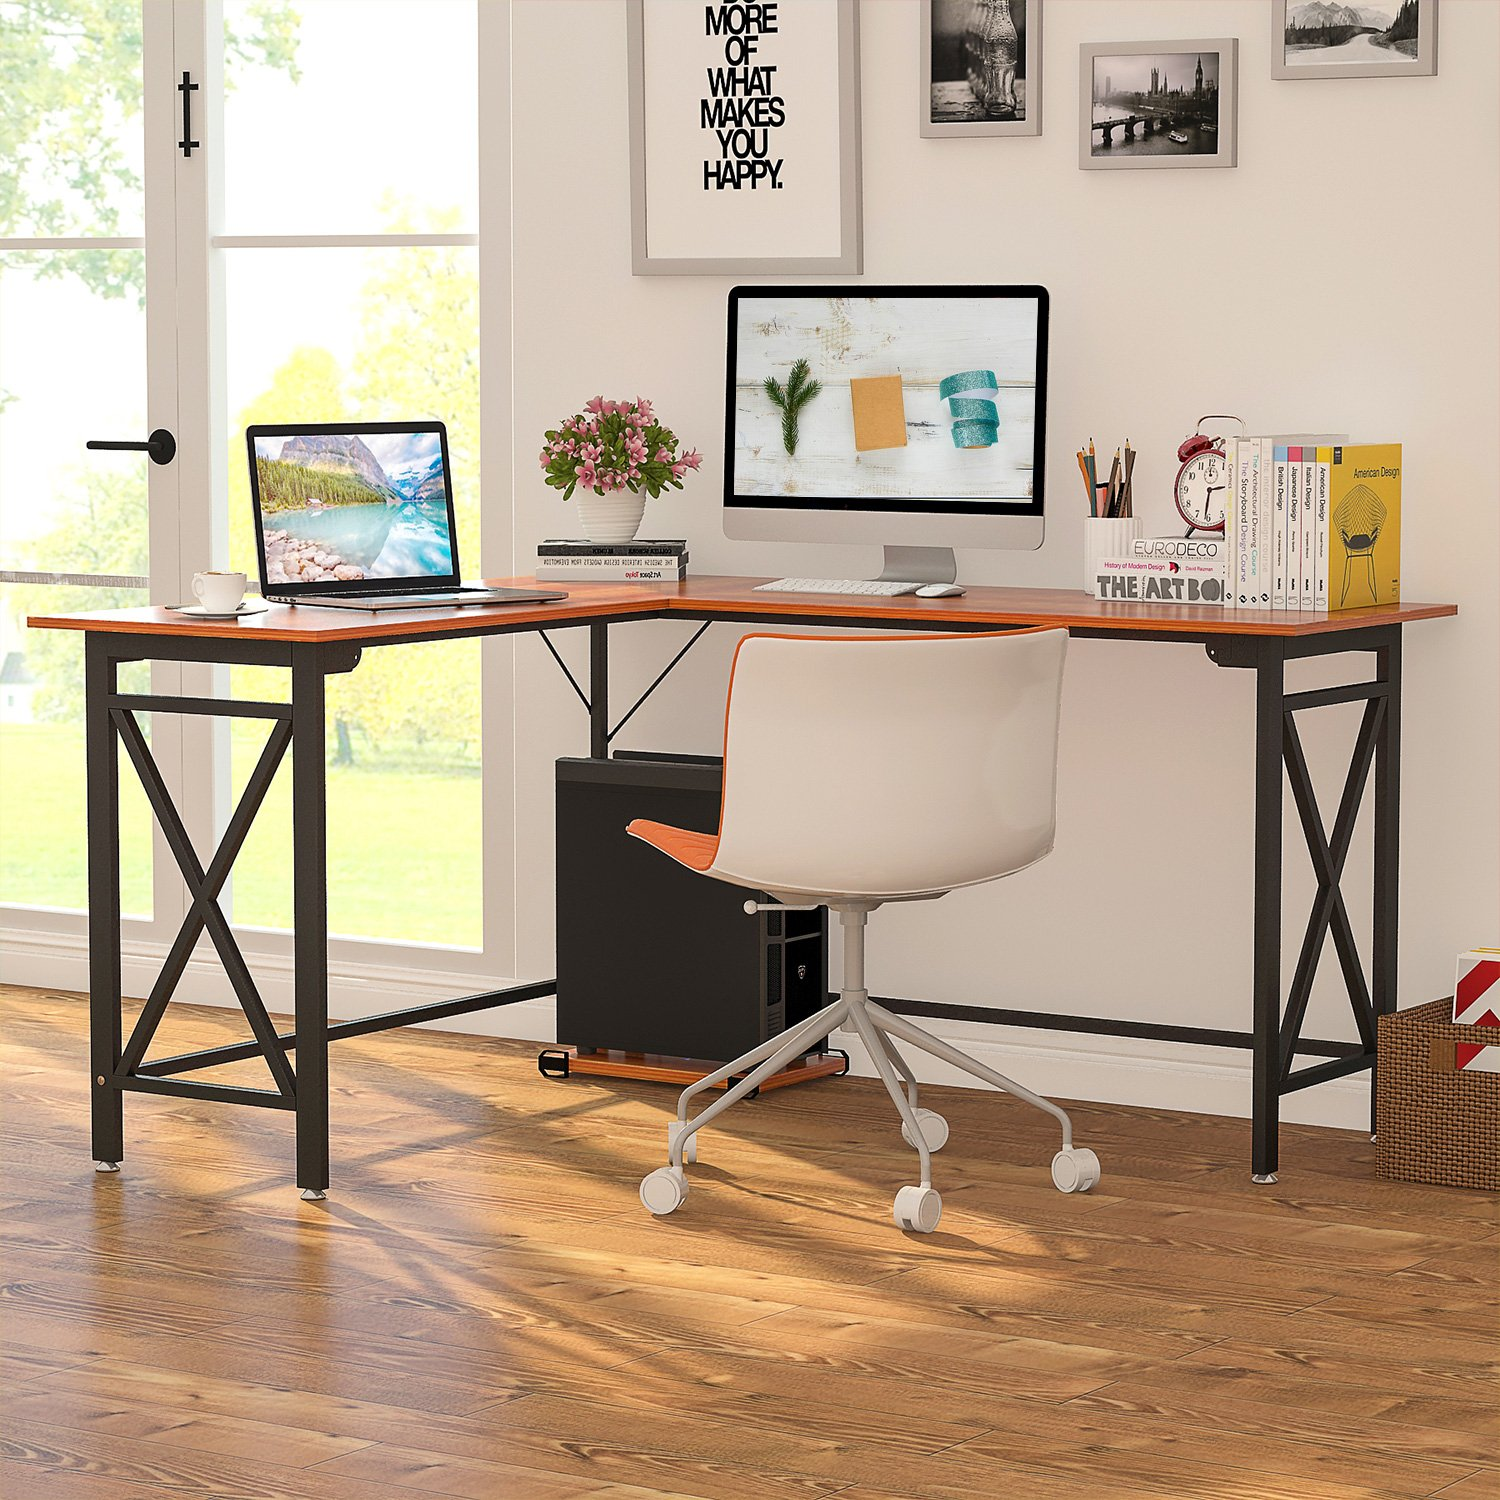 LITTLE TREE L Shaped Corner Computer Desk for Small Office Home, 59.14 L x 51.18 W x 19.69 D x 30.31 H , Rosewood